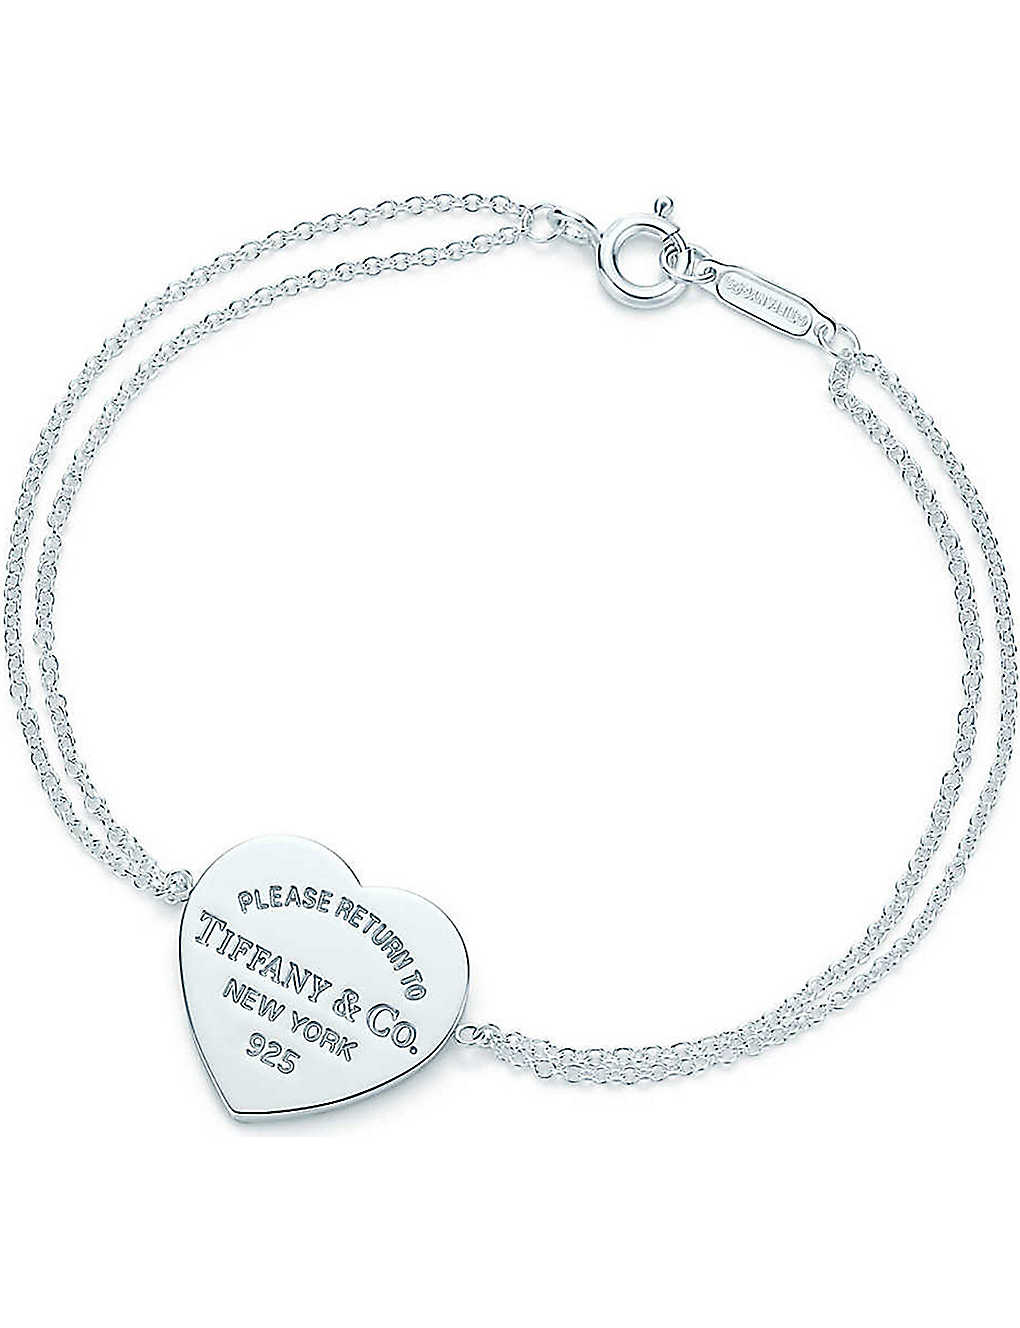 9028ee076 TIFFANY & CO - Return to Tiffany heart tag bracelet in sterling ...